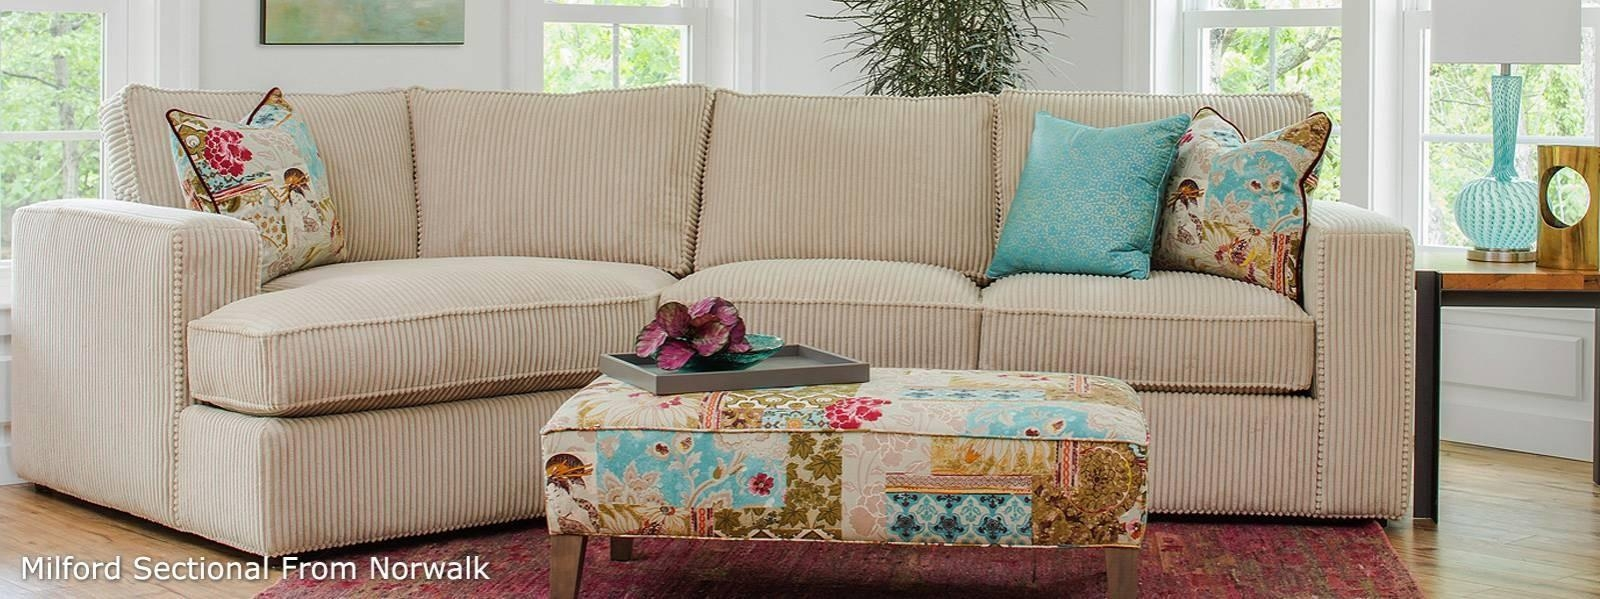 Sofas & Chairs Of Minnesota – Custom Made Furniture – Minneapols For Custom Made Sectional Sofas (Image 14 of 15)